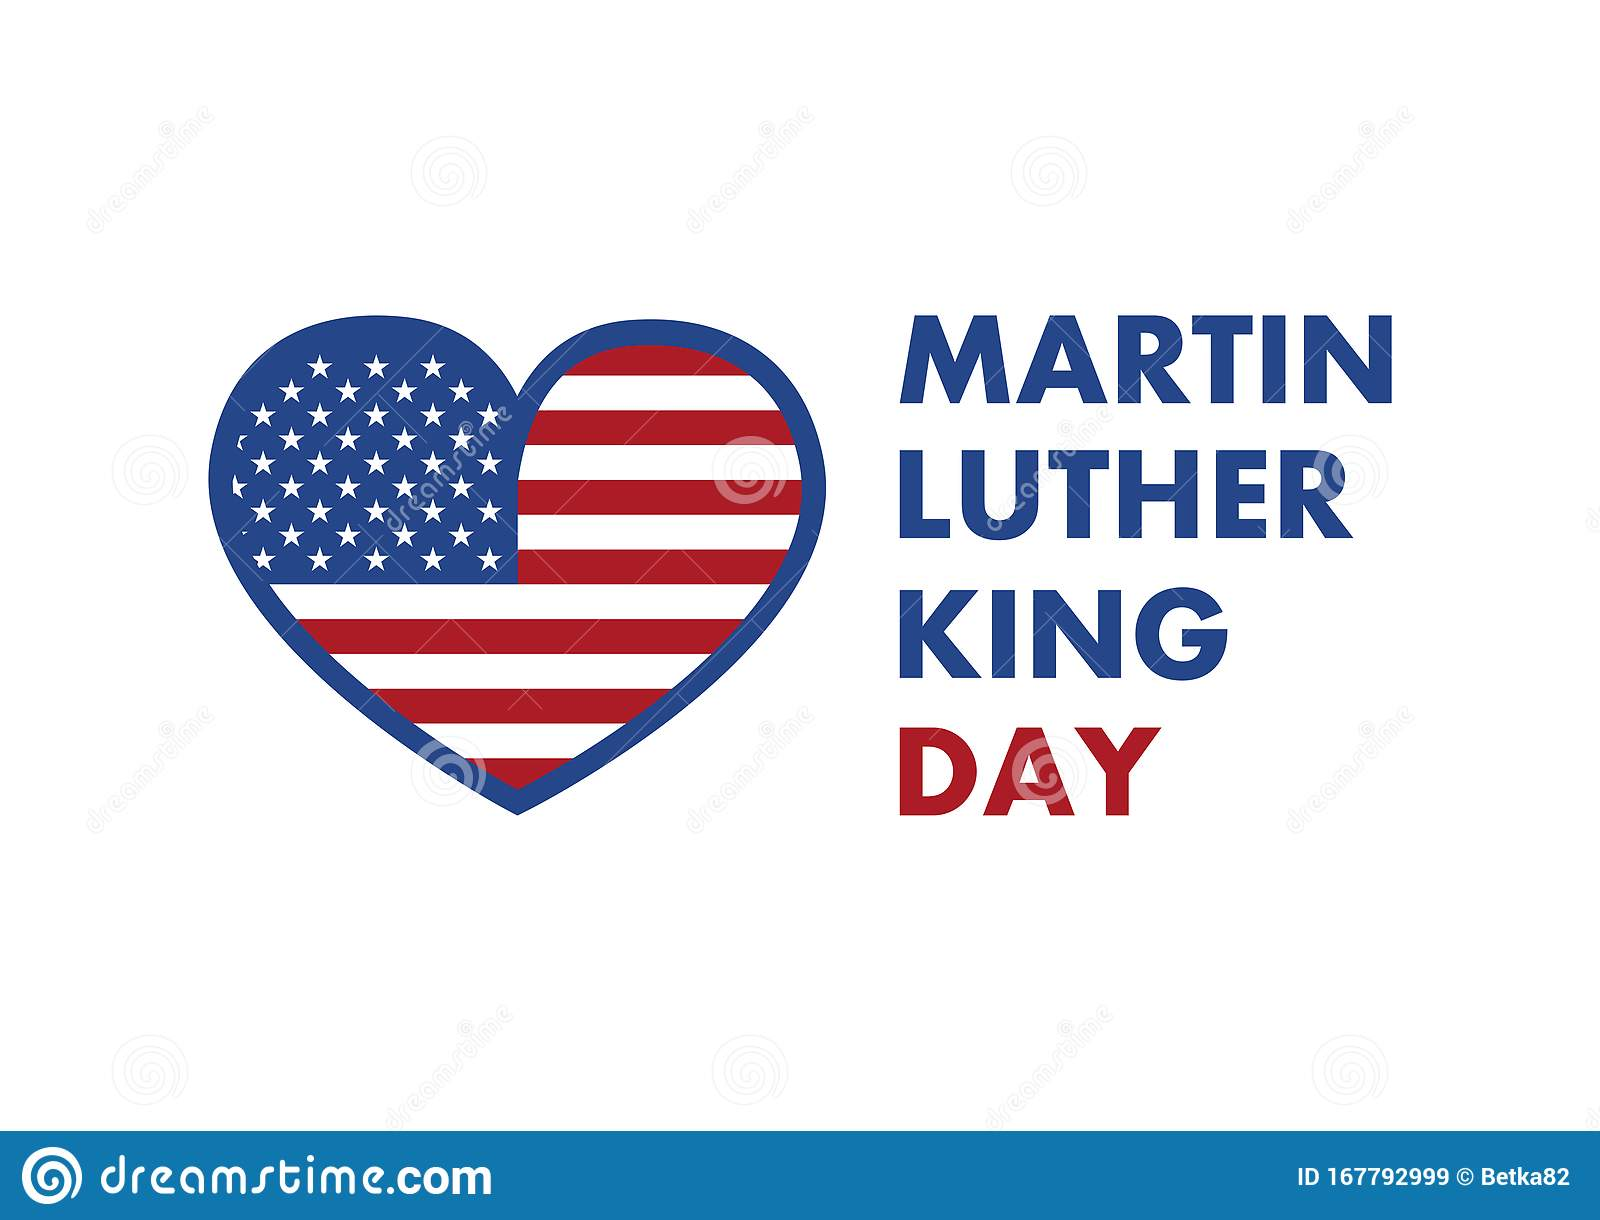 Martin Luther King Jr. Day Vector Stock Vector ...